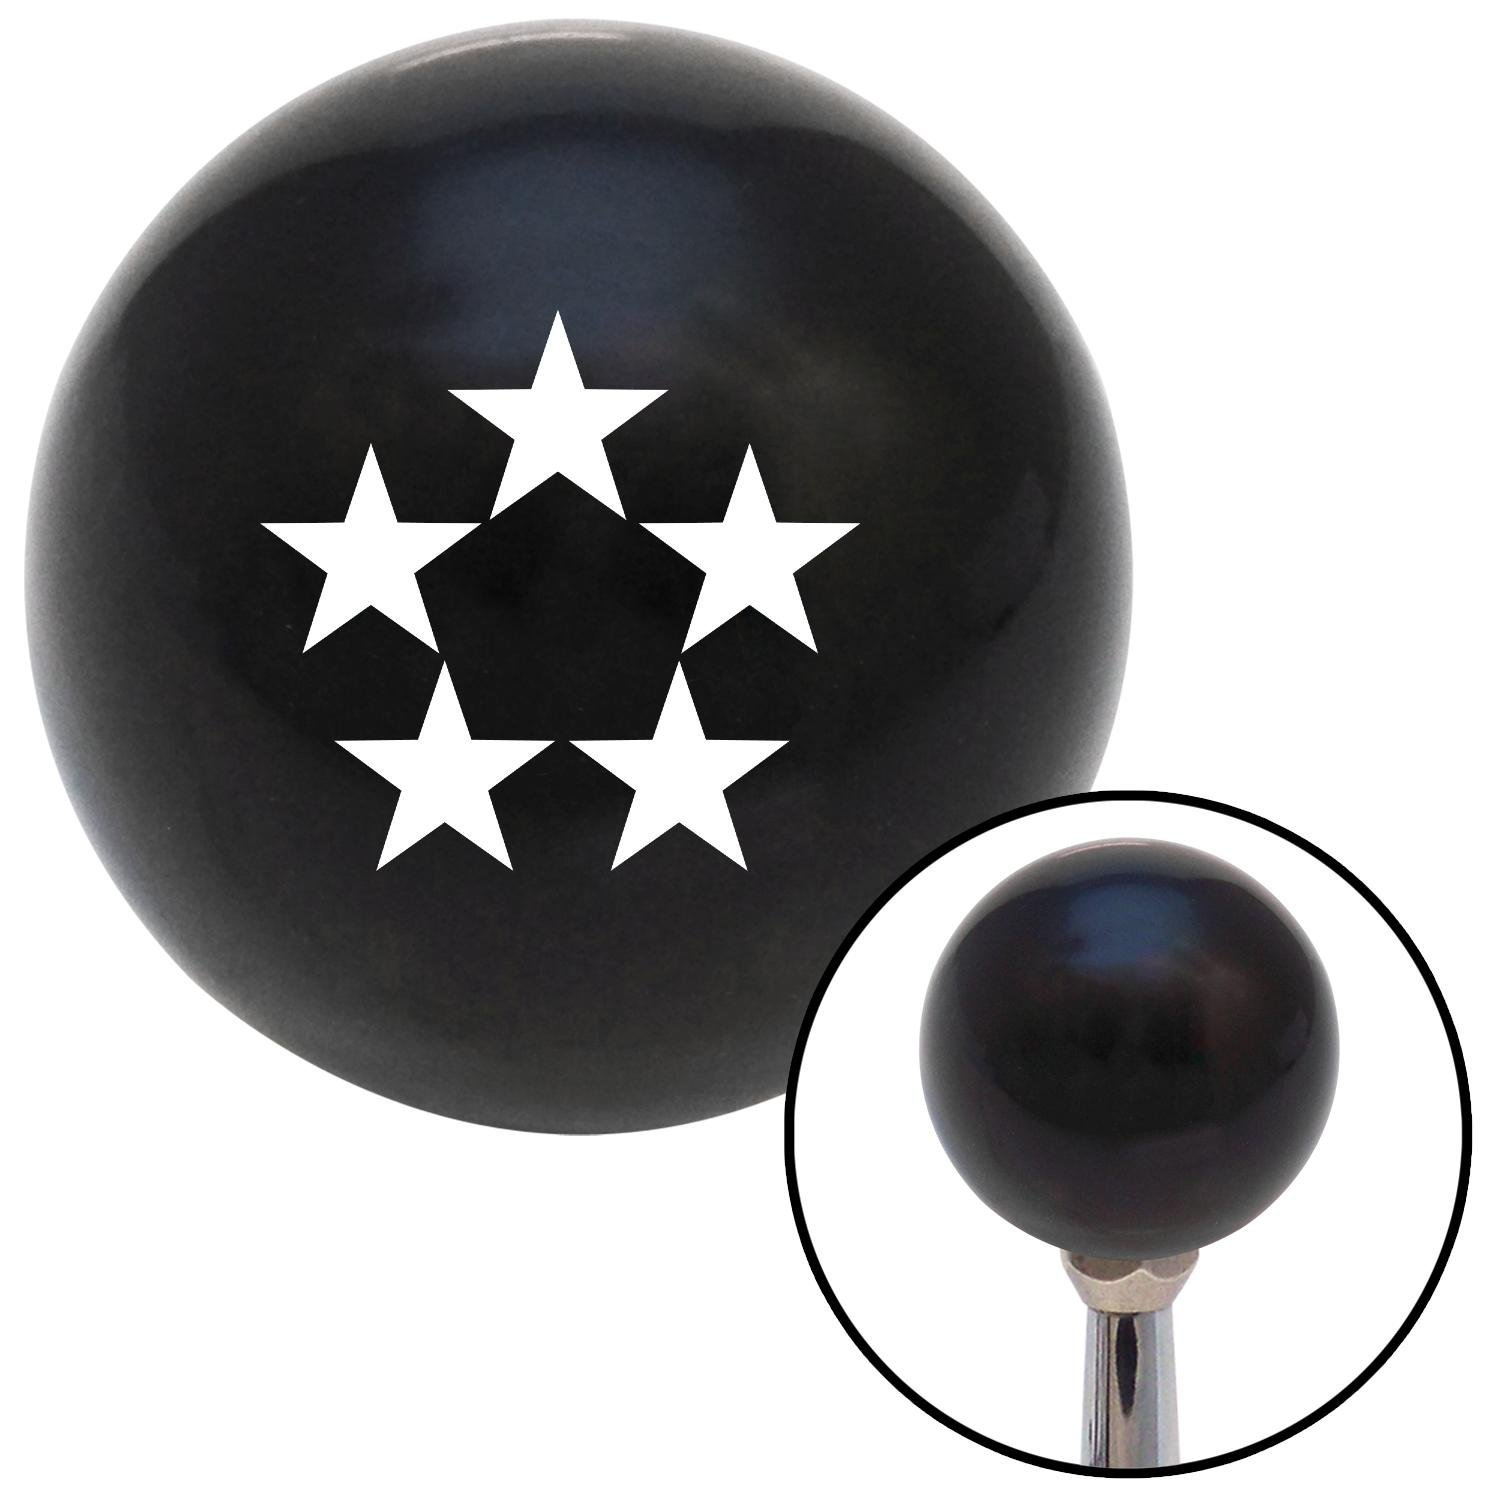 American Shifter 106477 Black Shift Knob with M16 x 1.5 Insert White Officer 11 - General of Air Force